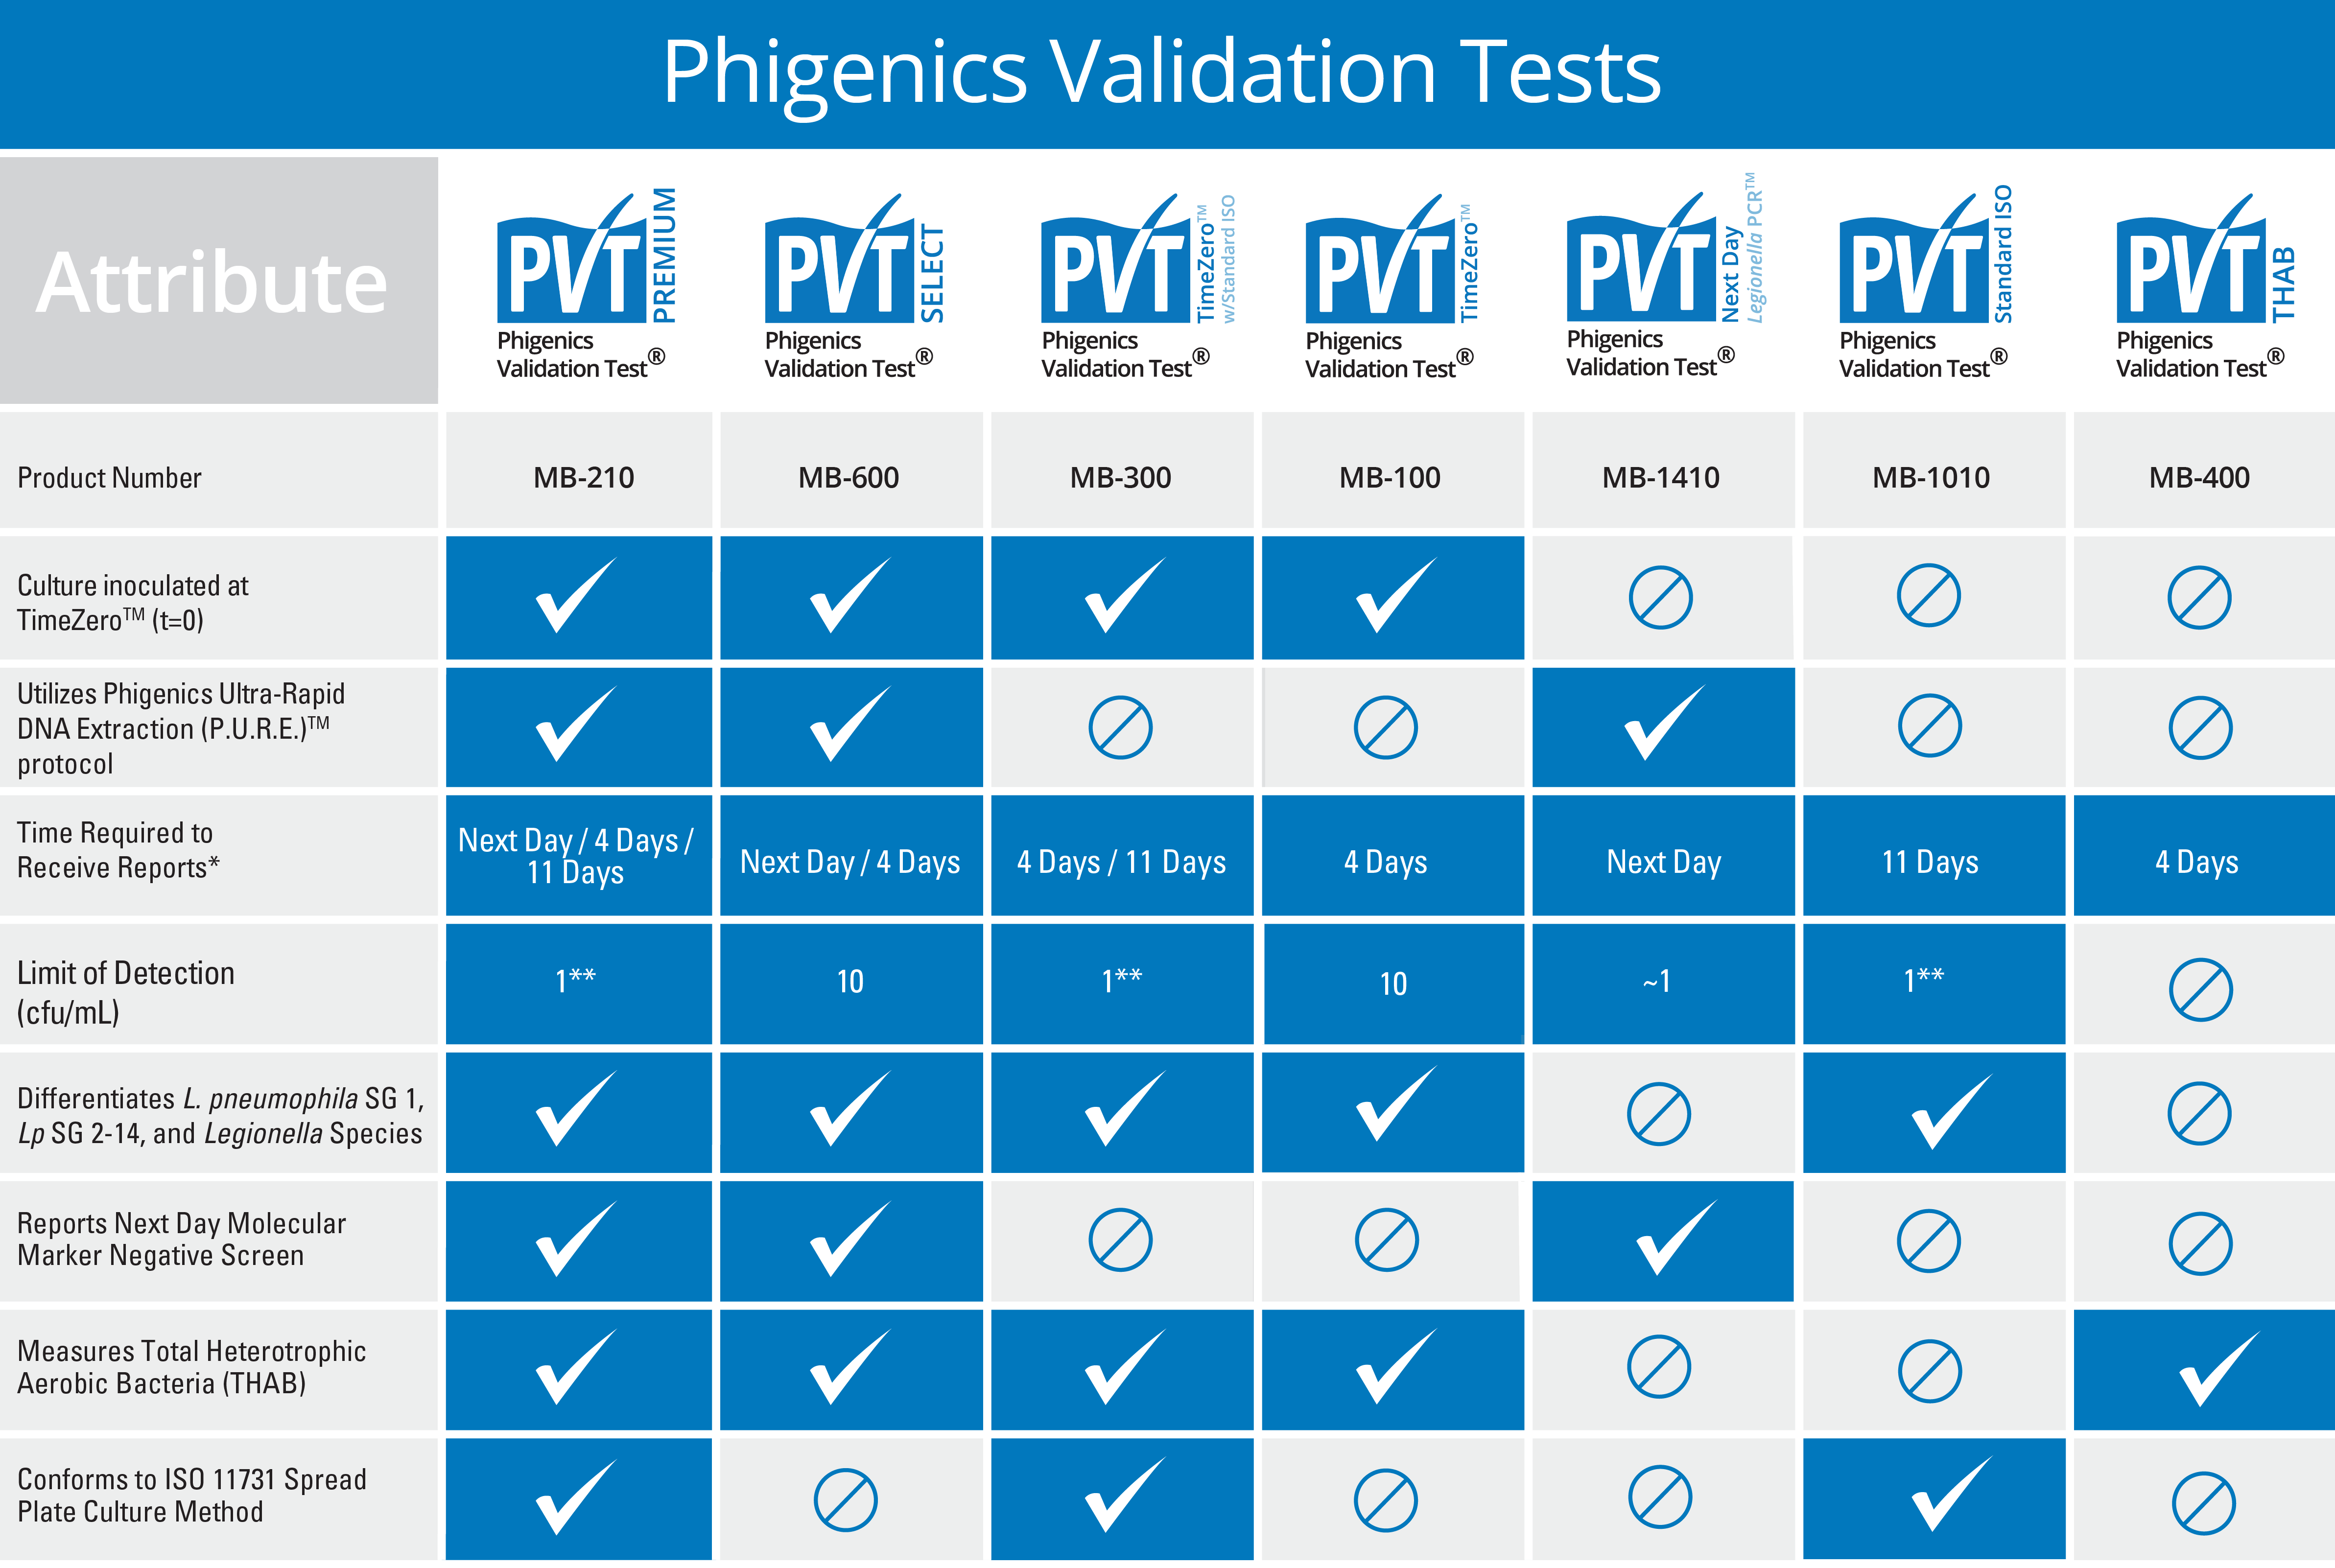 Phigenics Validation Tests